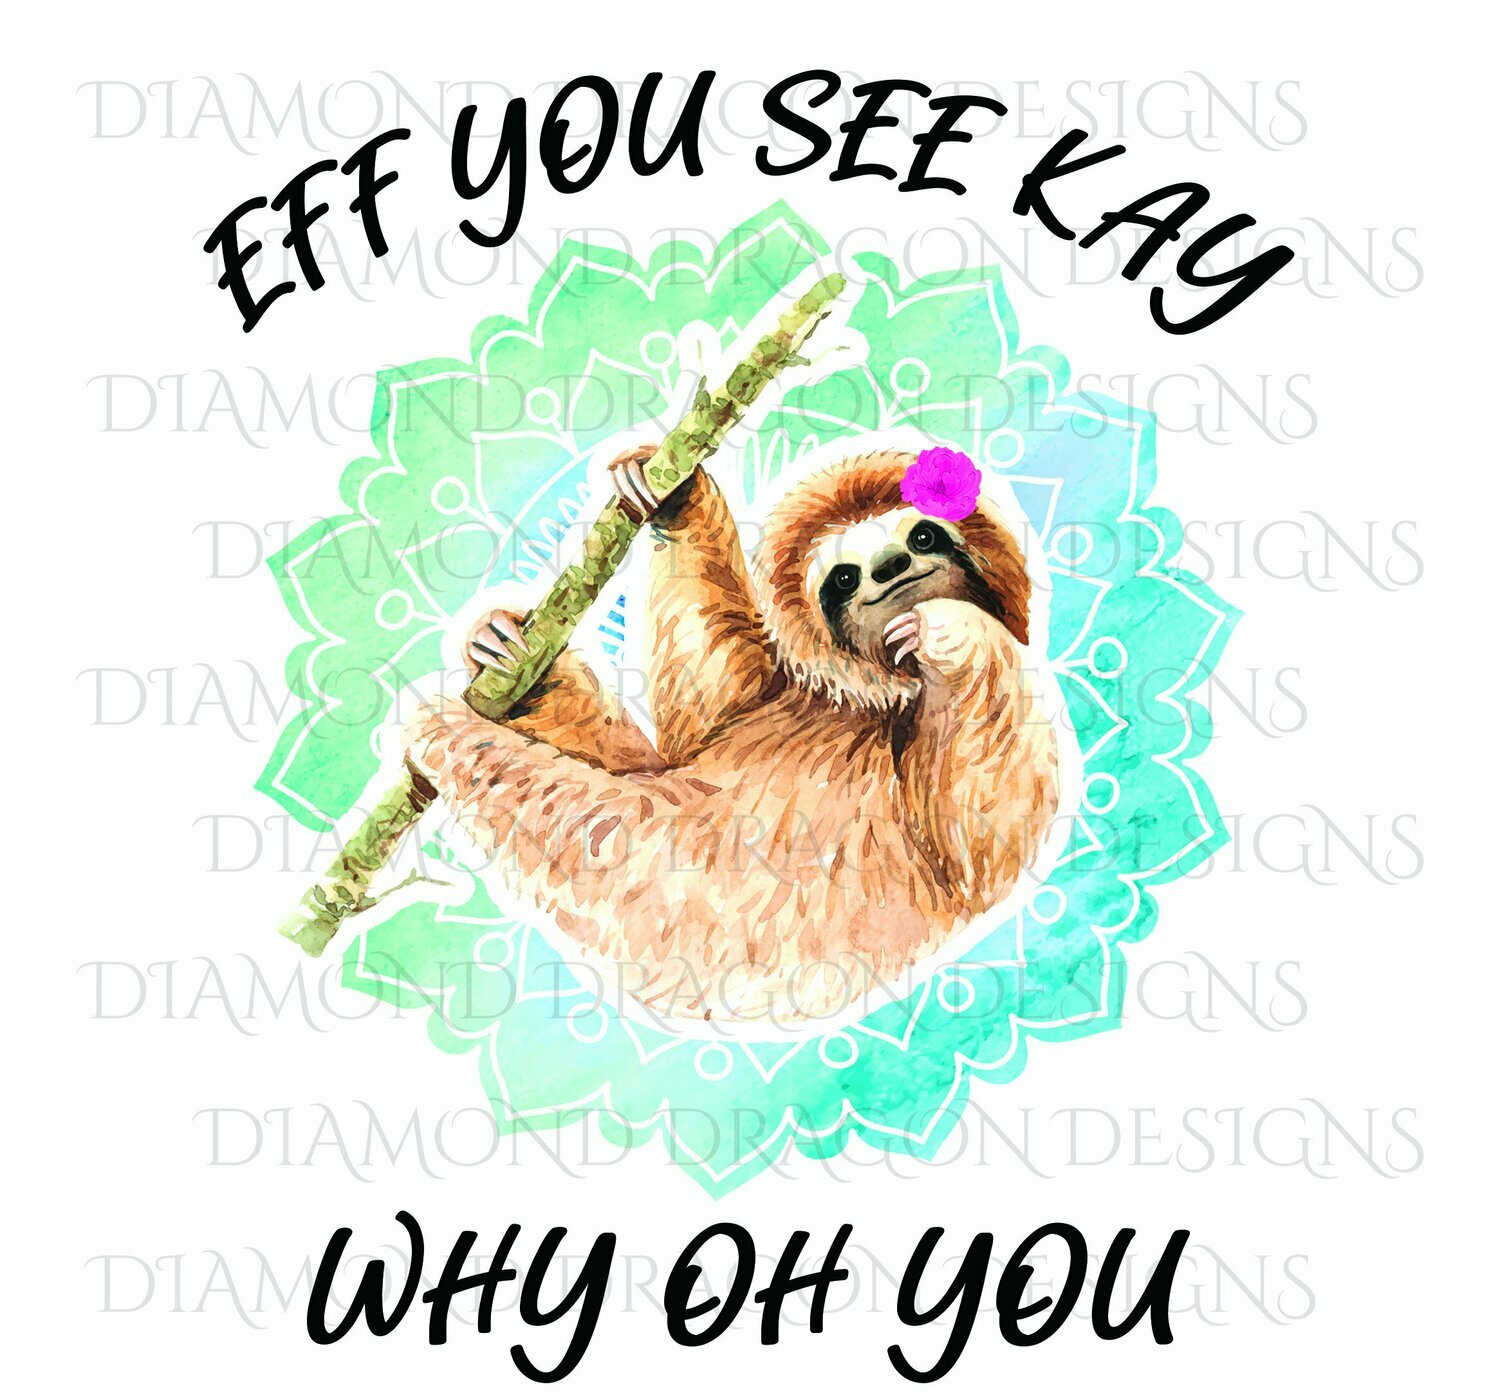 Sloths - Cute Sloth, Sloth with Flower, Eff You See Kay, Why Oh You, Watercolor Sloth, Digital Image